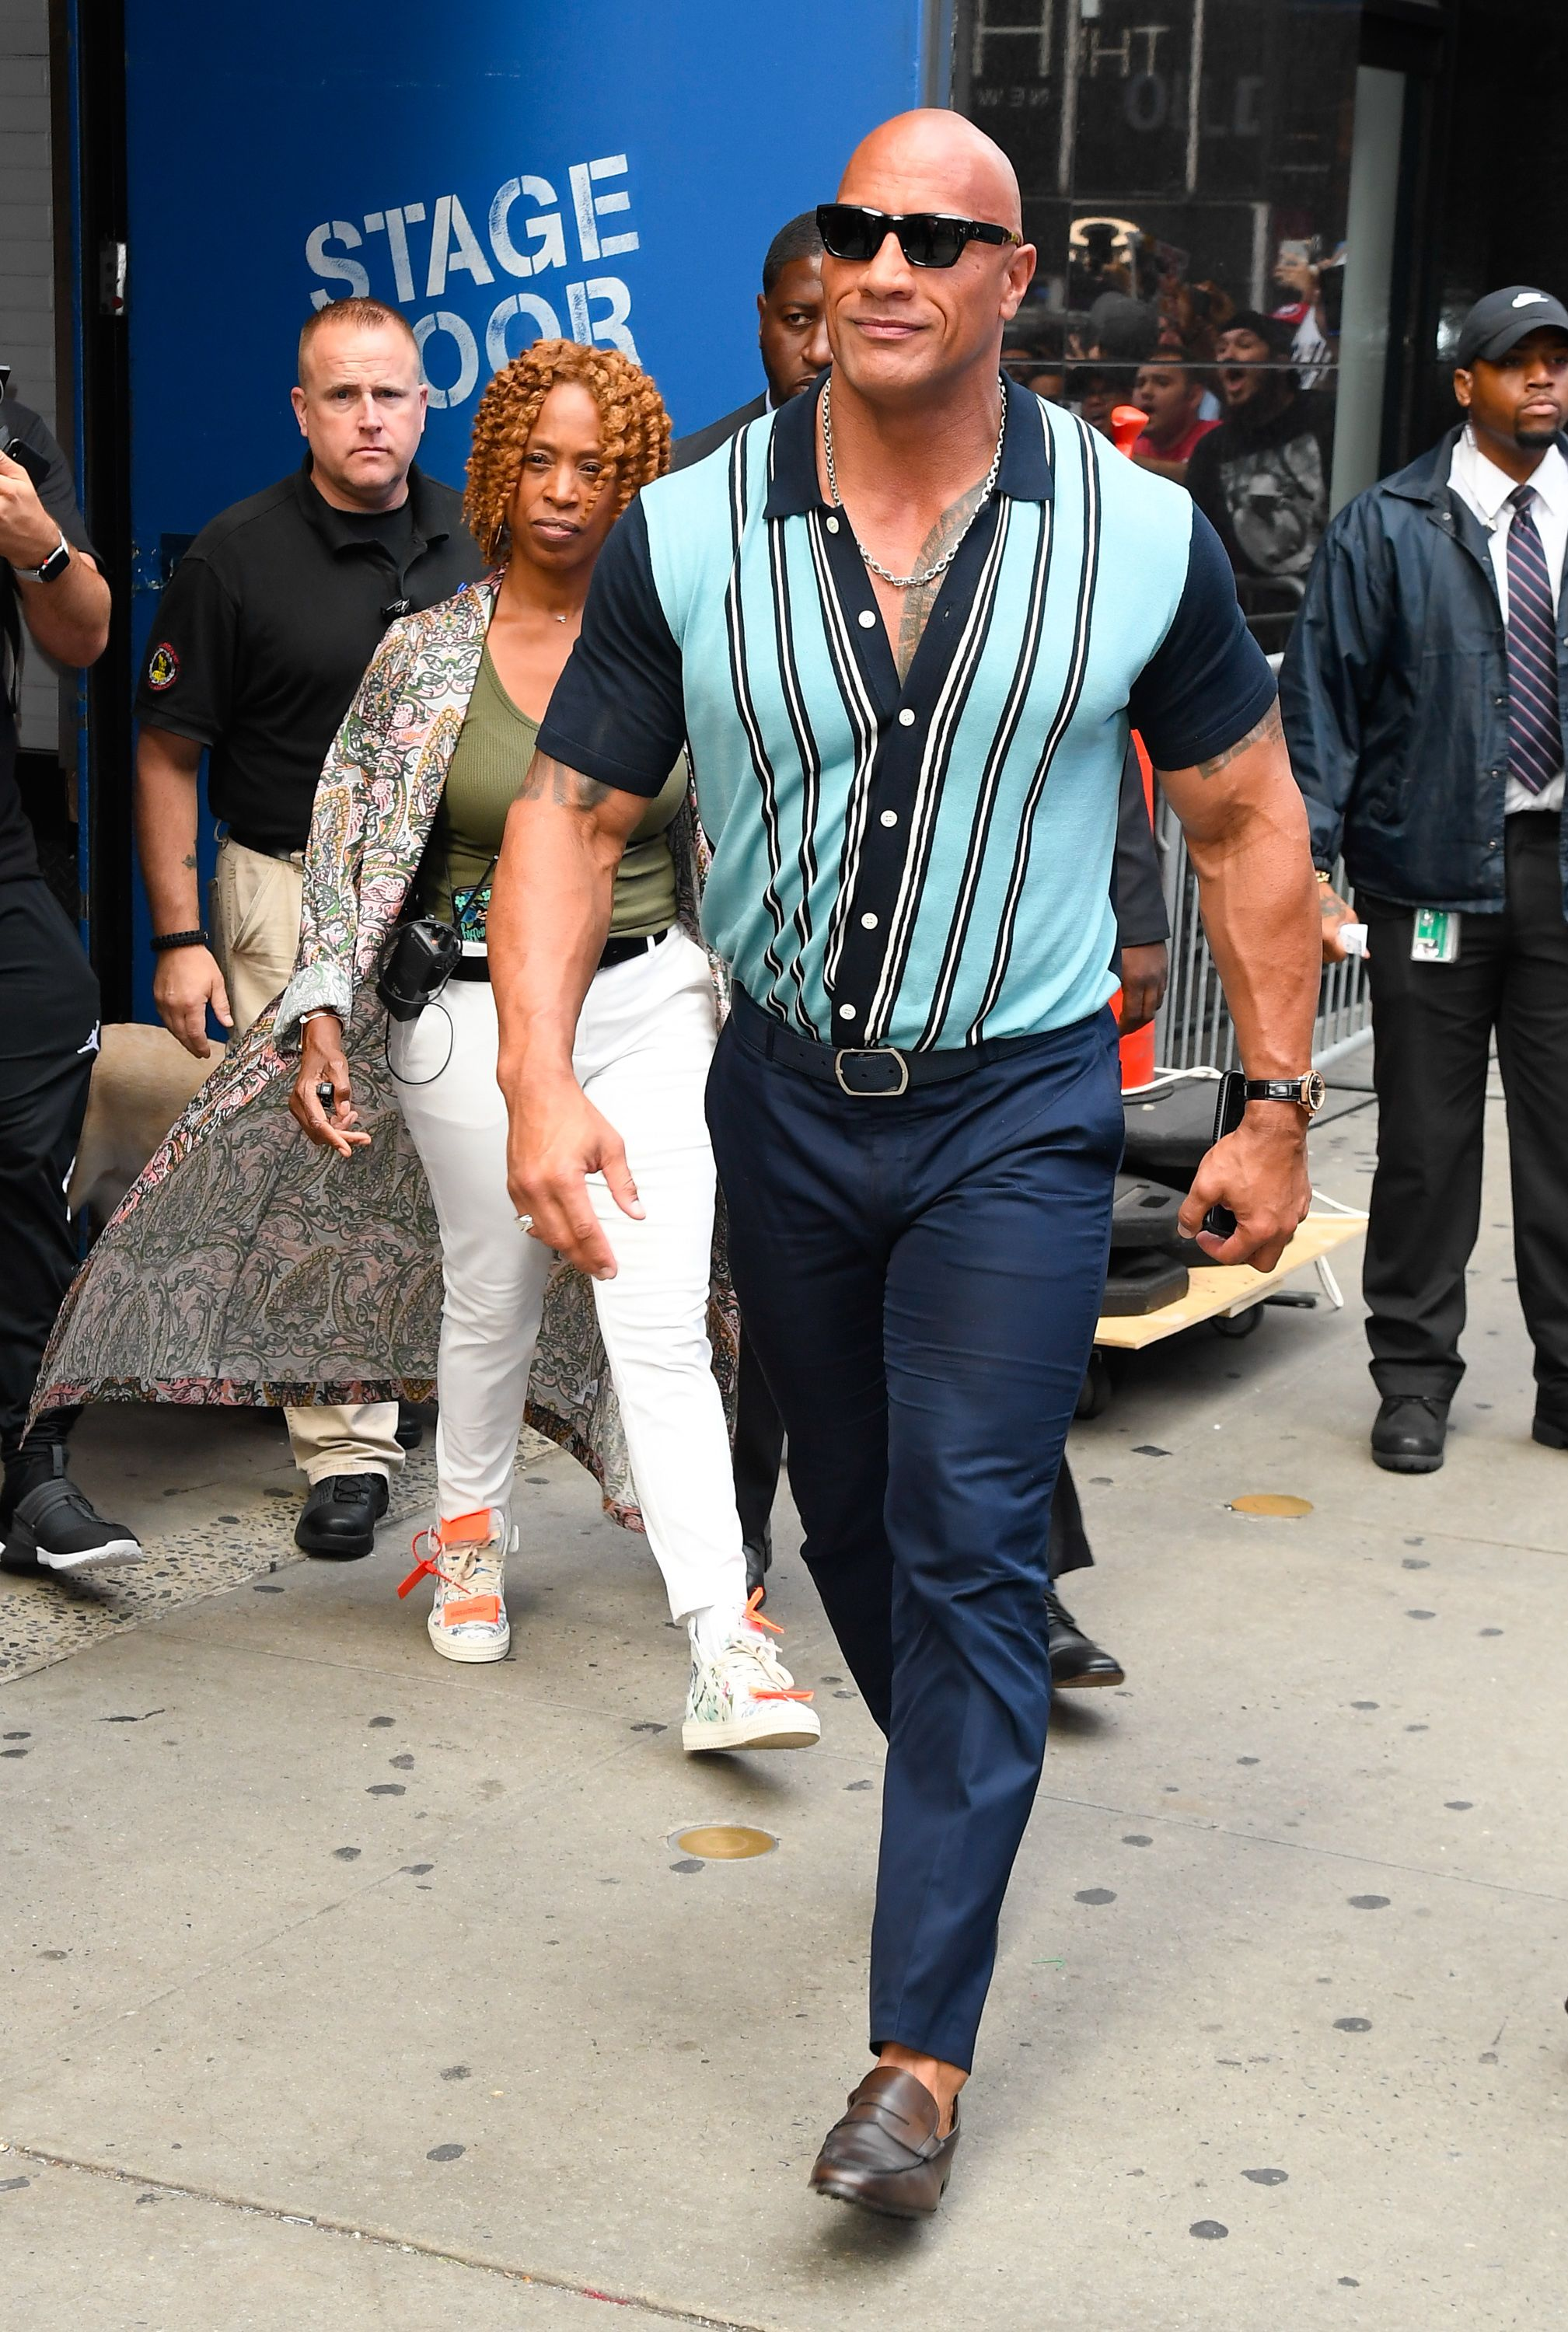 Let Dwayne 'The Rock' Johnson and Todd Snyder Show You Summer Style Done Right